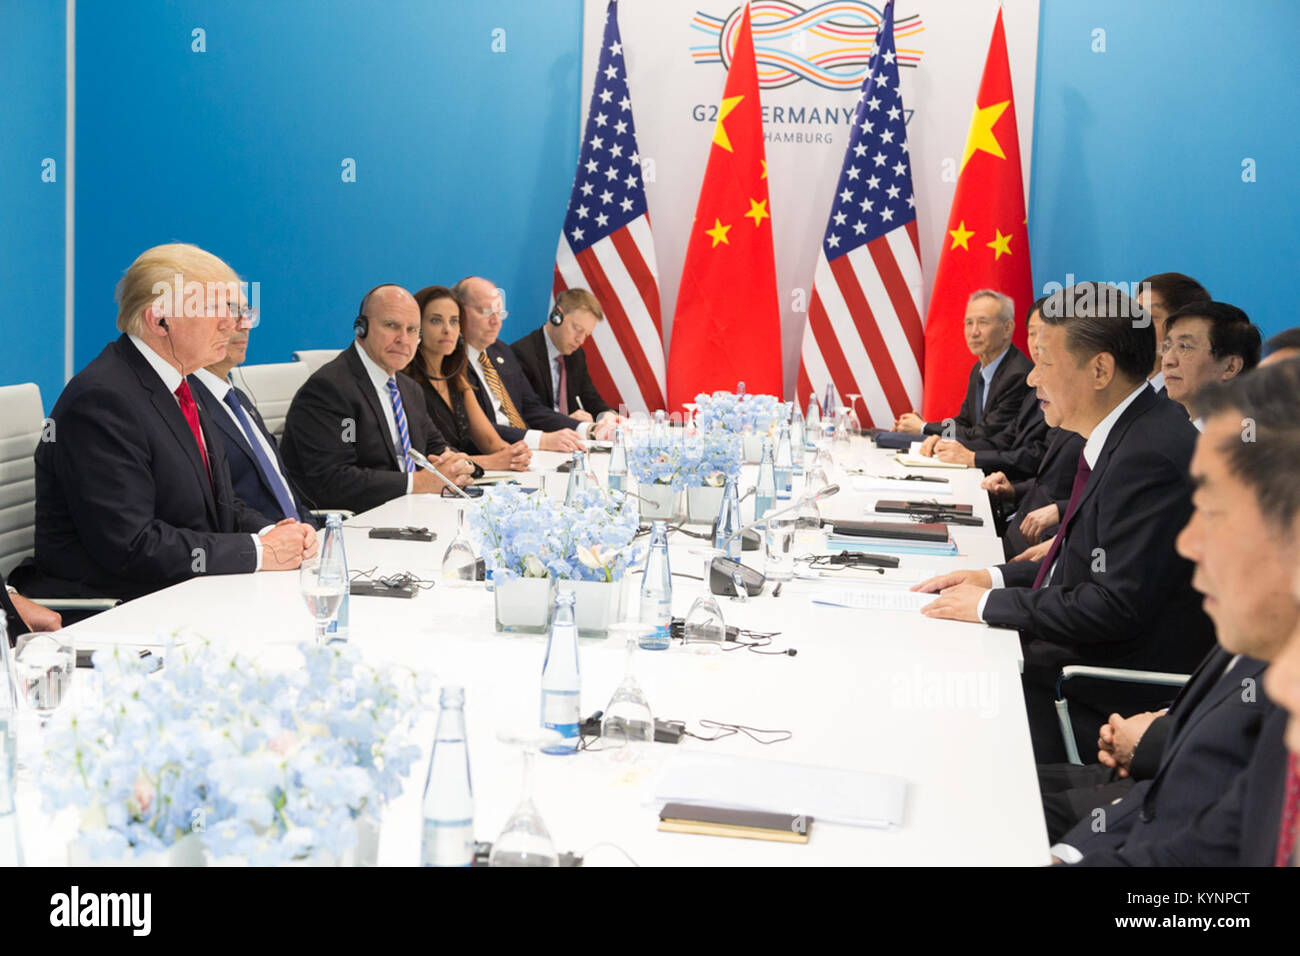 President Donald J. Trump and President Xi Jinping | July 8, 2017 (Official White House Photo by Shealah Craighead) - Stock Image